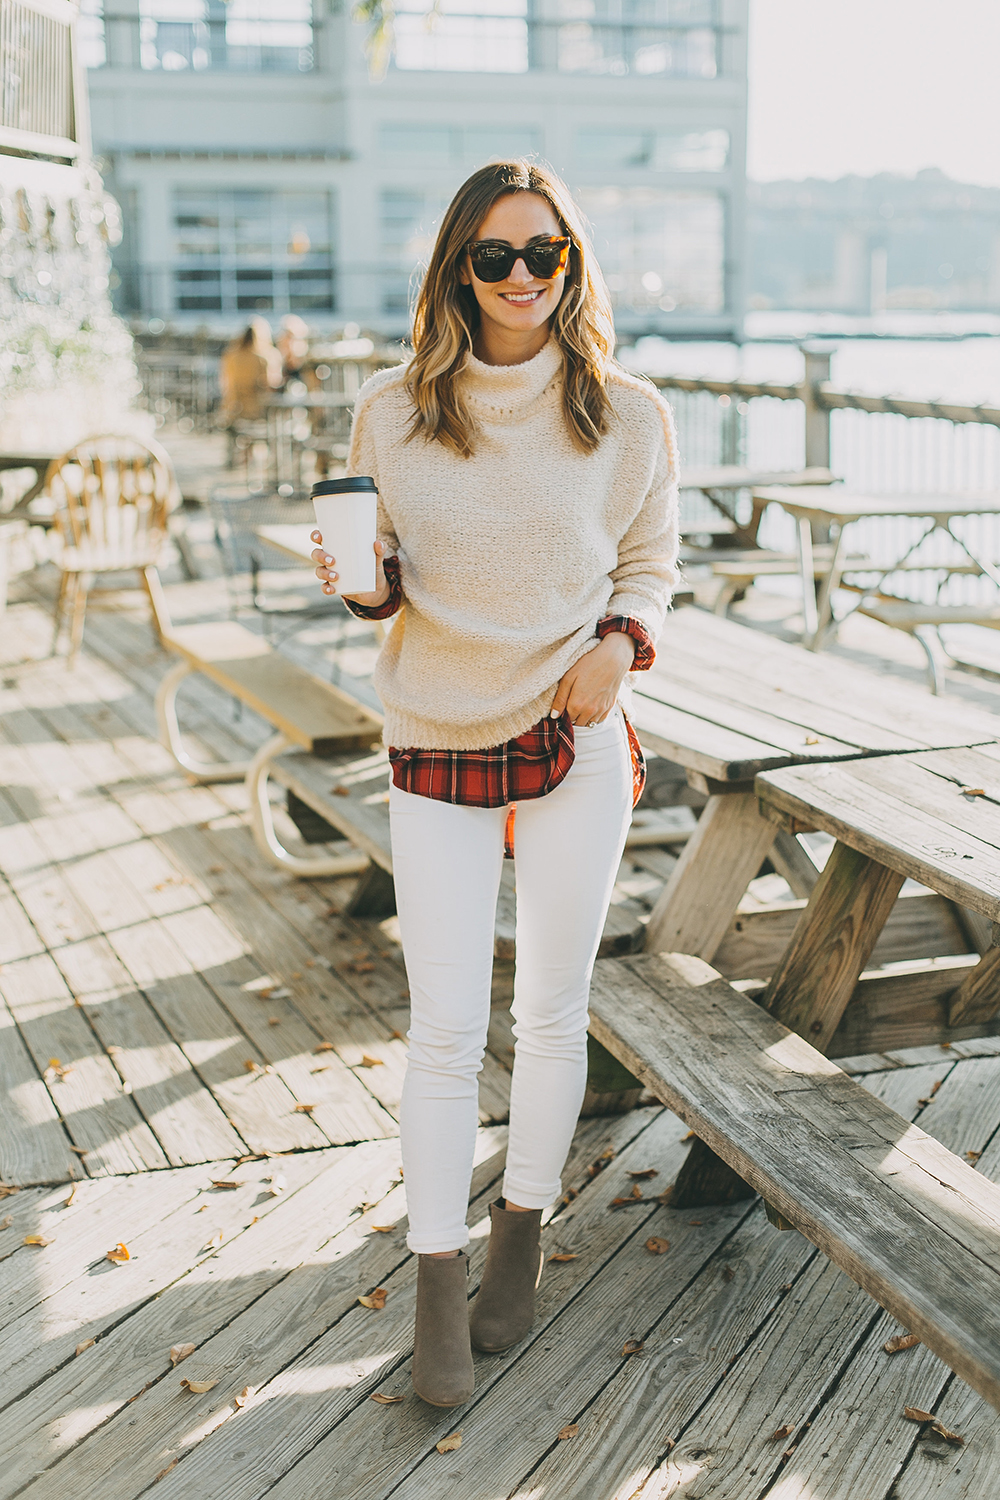 livvyland-blog-olivia-watson-austin-texas-fashion-style-blogger-knit-sweater-plaid-button-down-layer-white-jeans-mozarts-coffeehouse-3